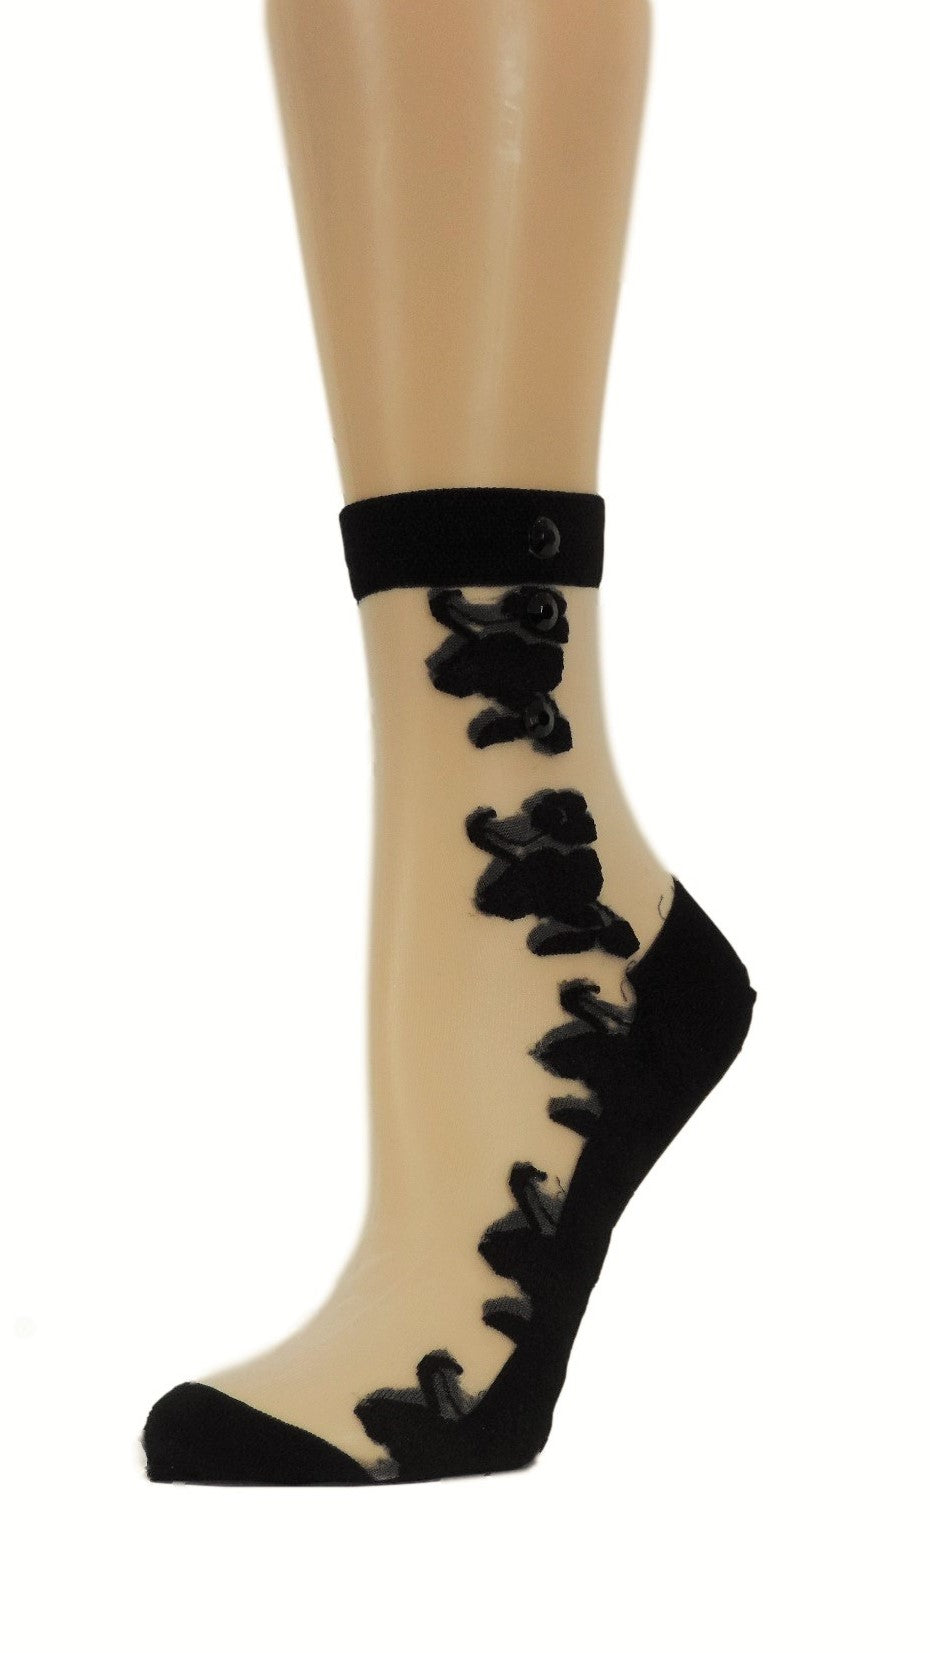 Big Black Roses Custom Sheer Socks with beads - Global Trendz Fashion®